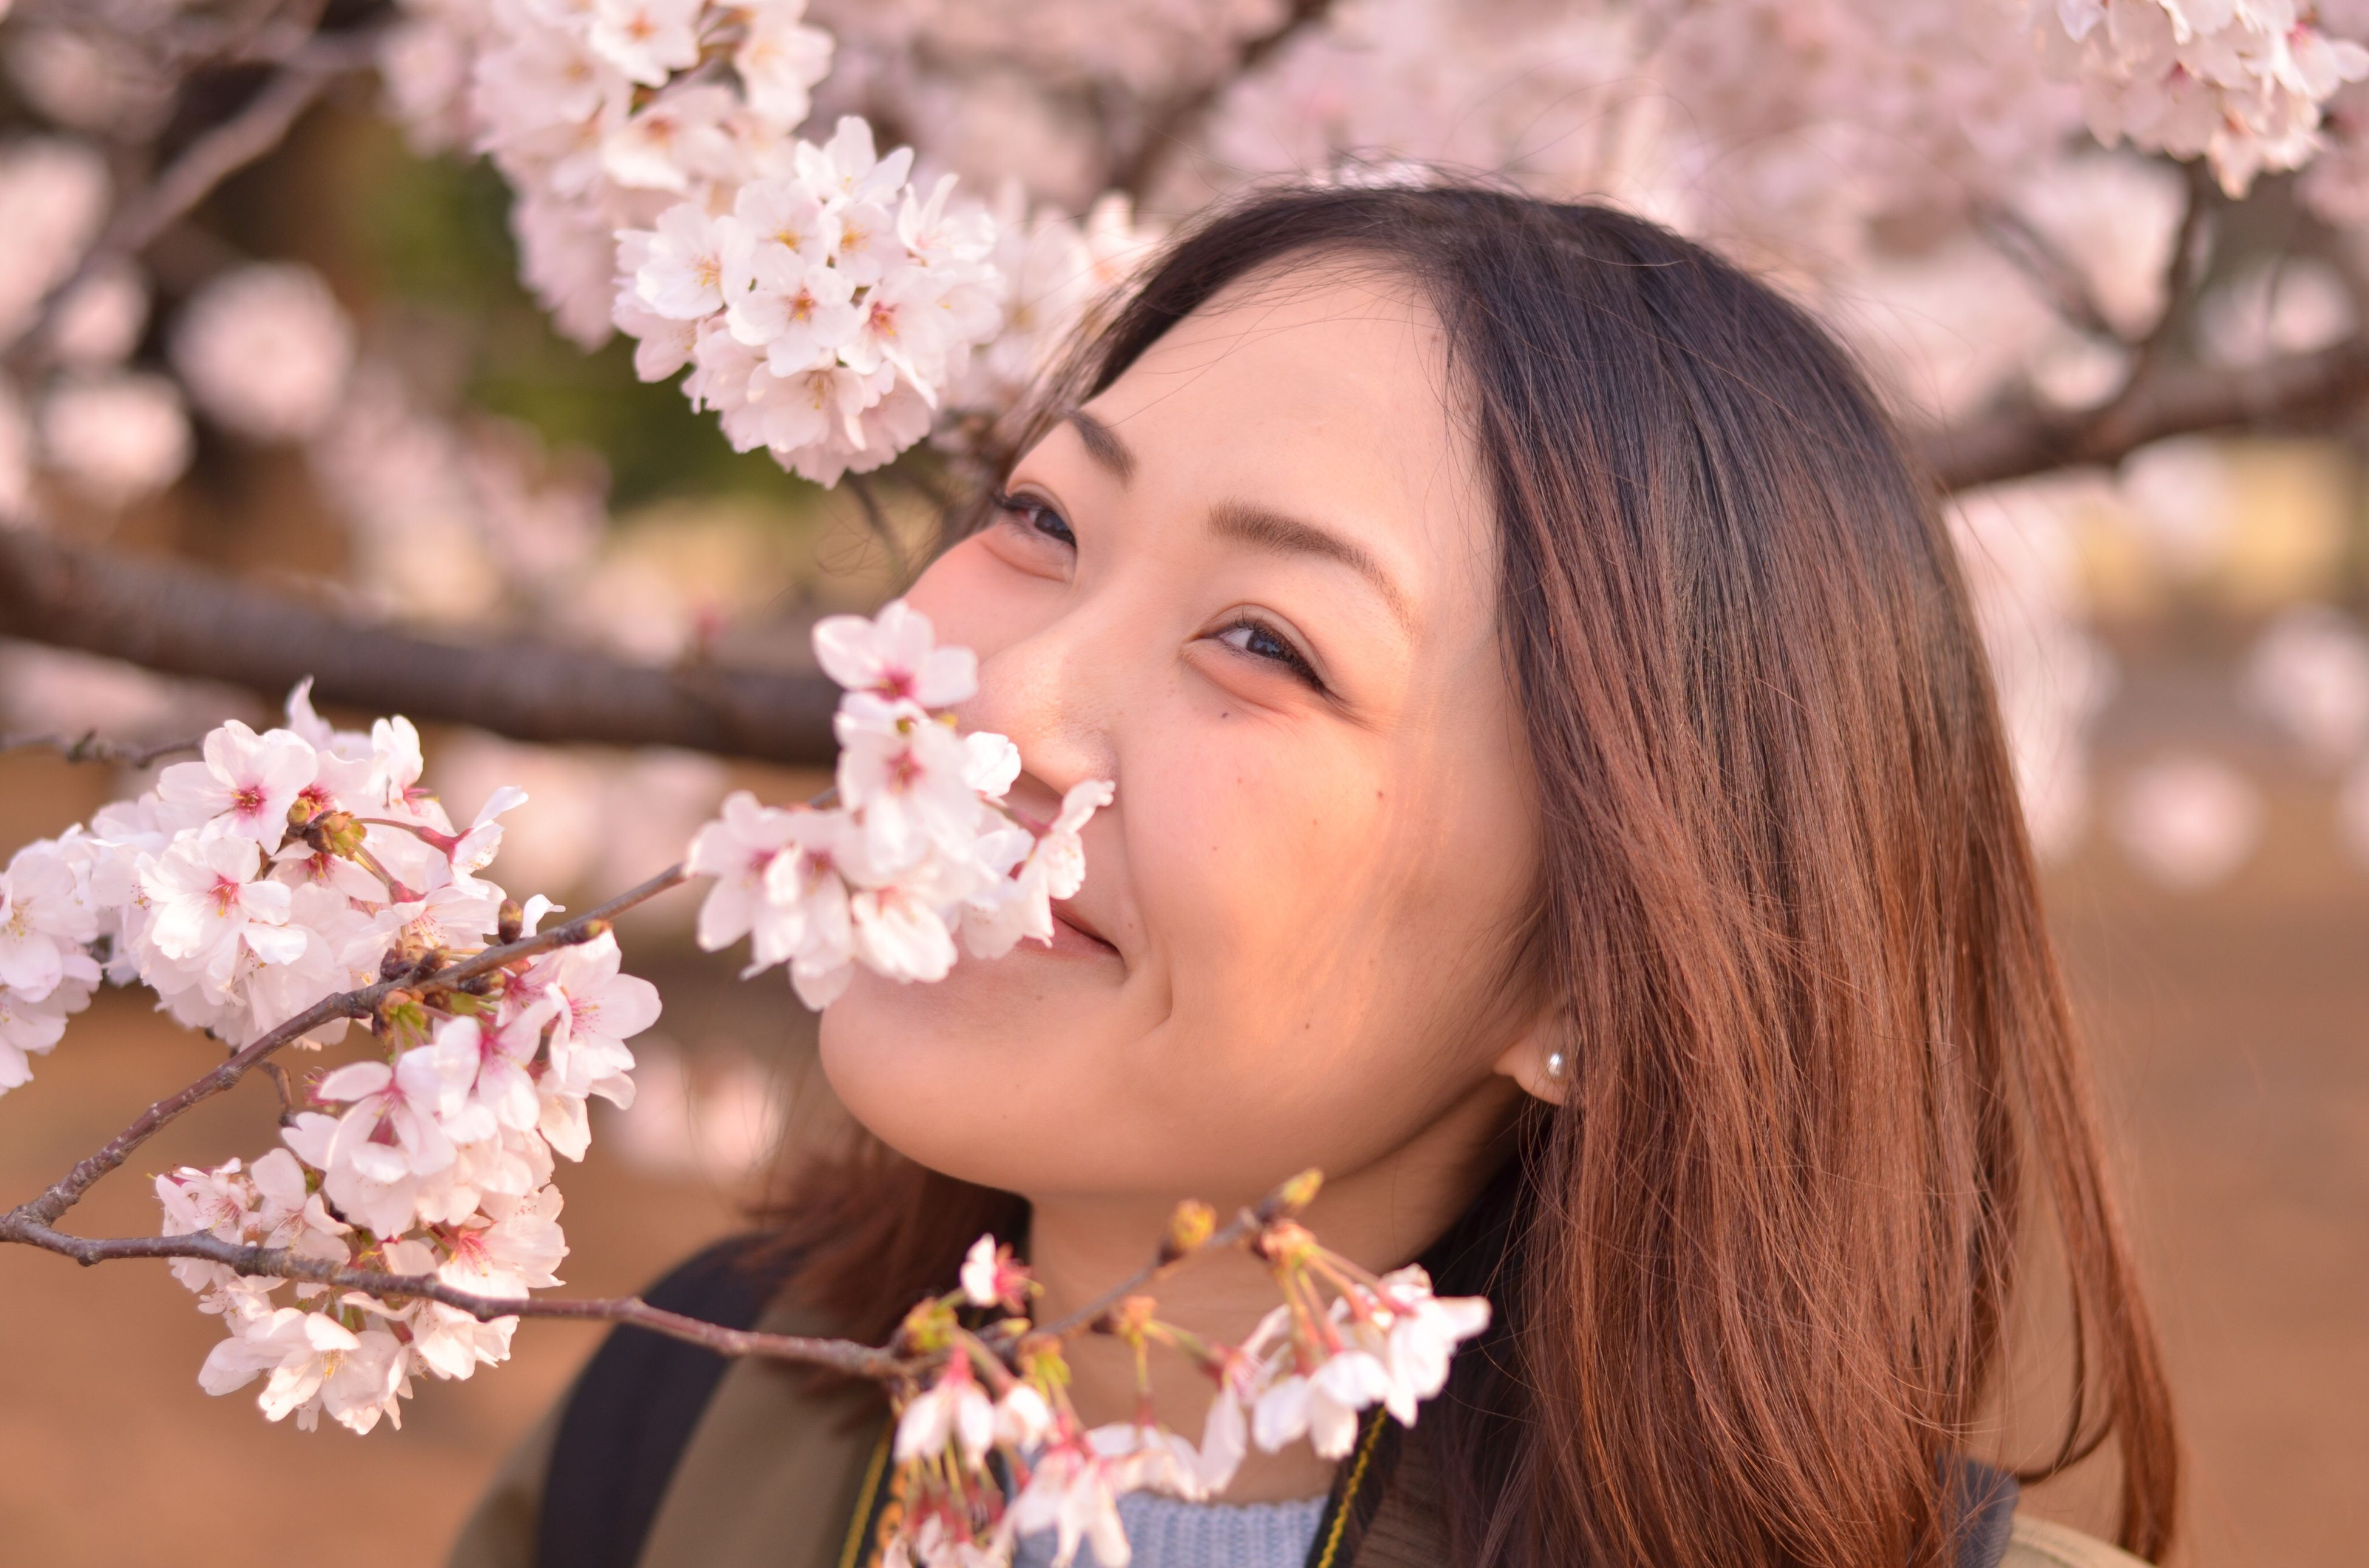 flower, focus on foreground, fragility, freshness, close-up, person, young women, lifestyles, petal, nature, beauty in nature, young adult, pink color, growth, flower head, branch, park - man made space